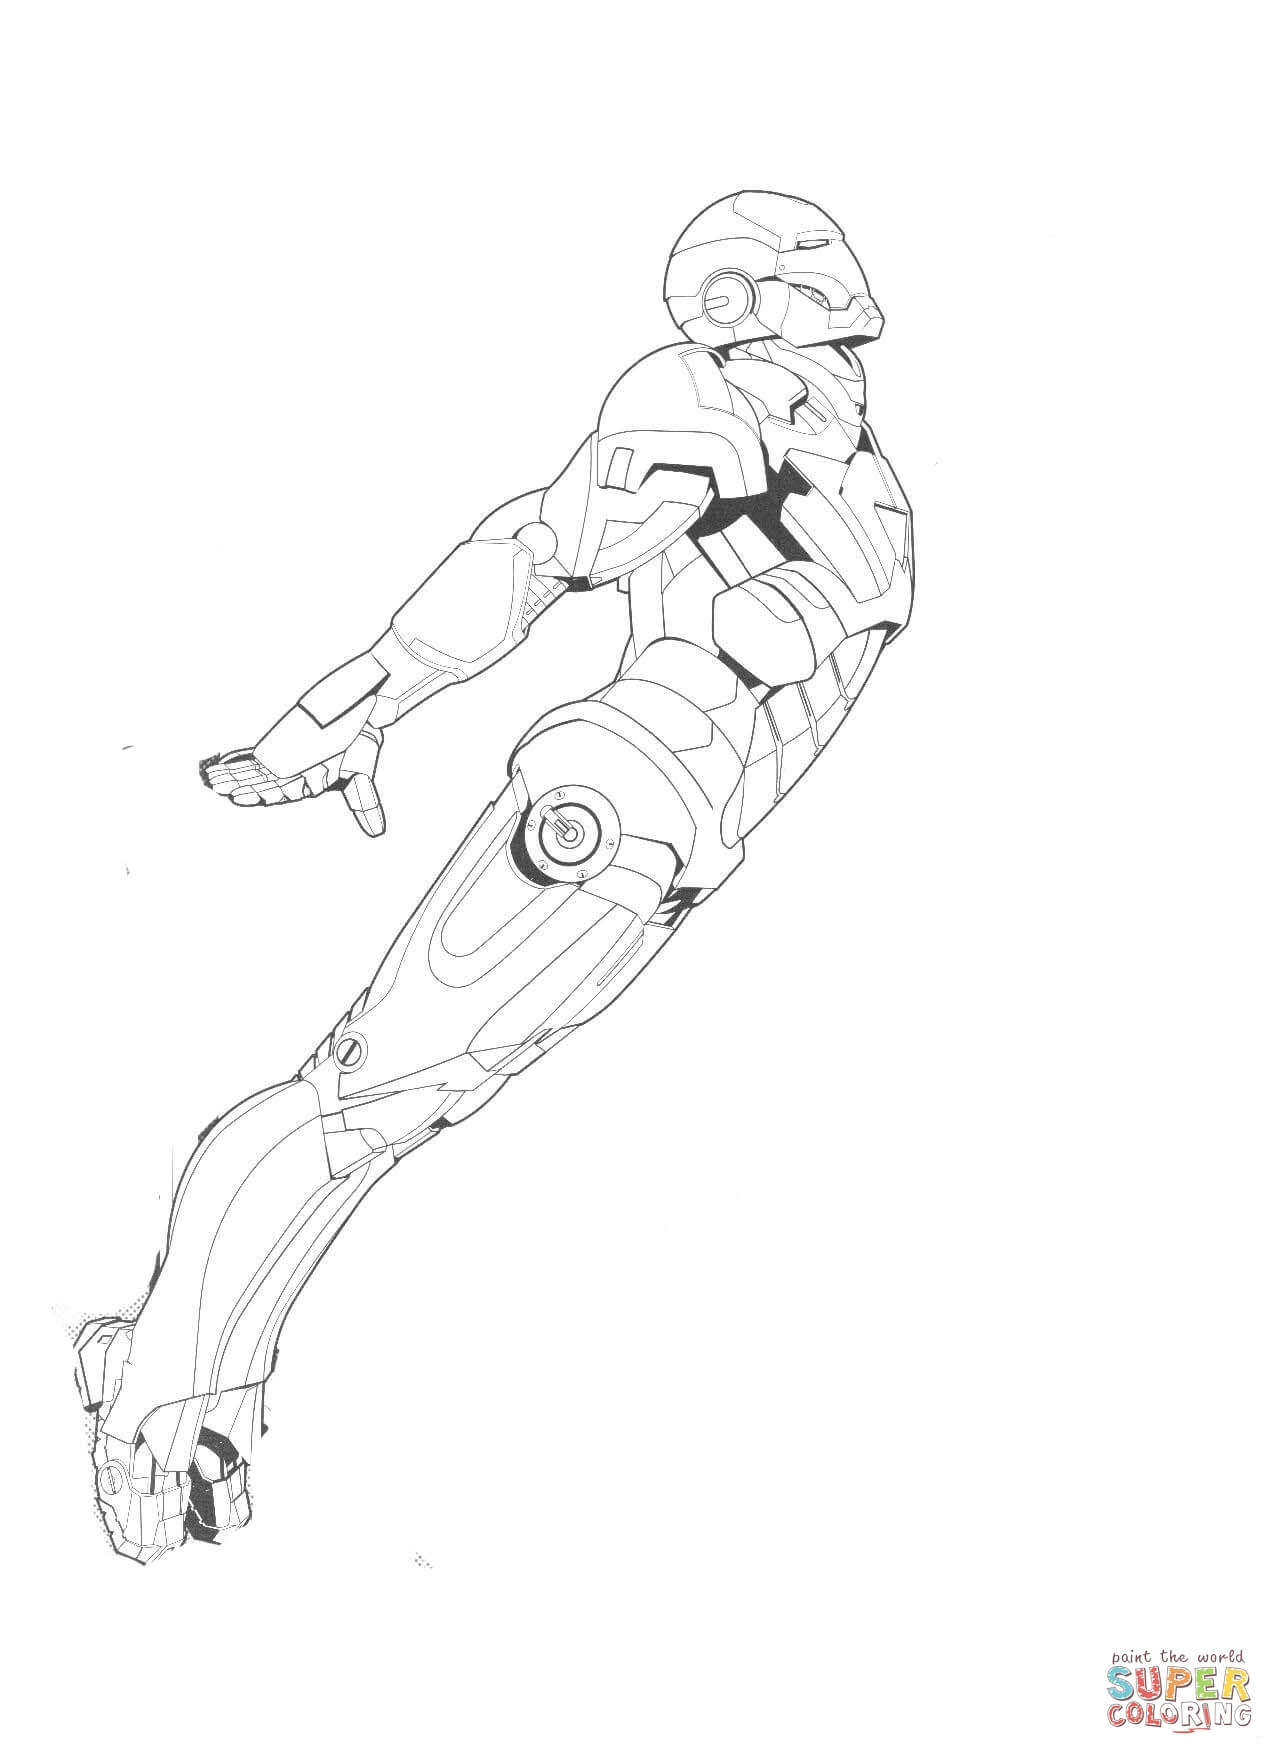 iron man coloring pages online free printable iron man coloring pages for kids cool2bkids online man iron pages coloring